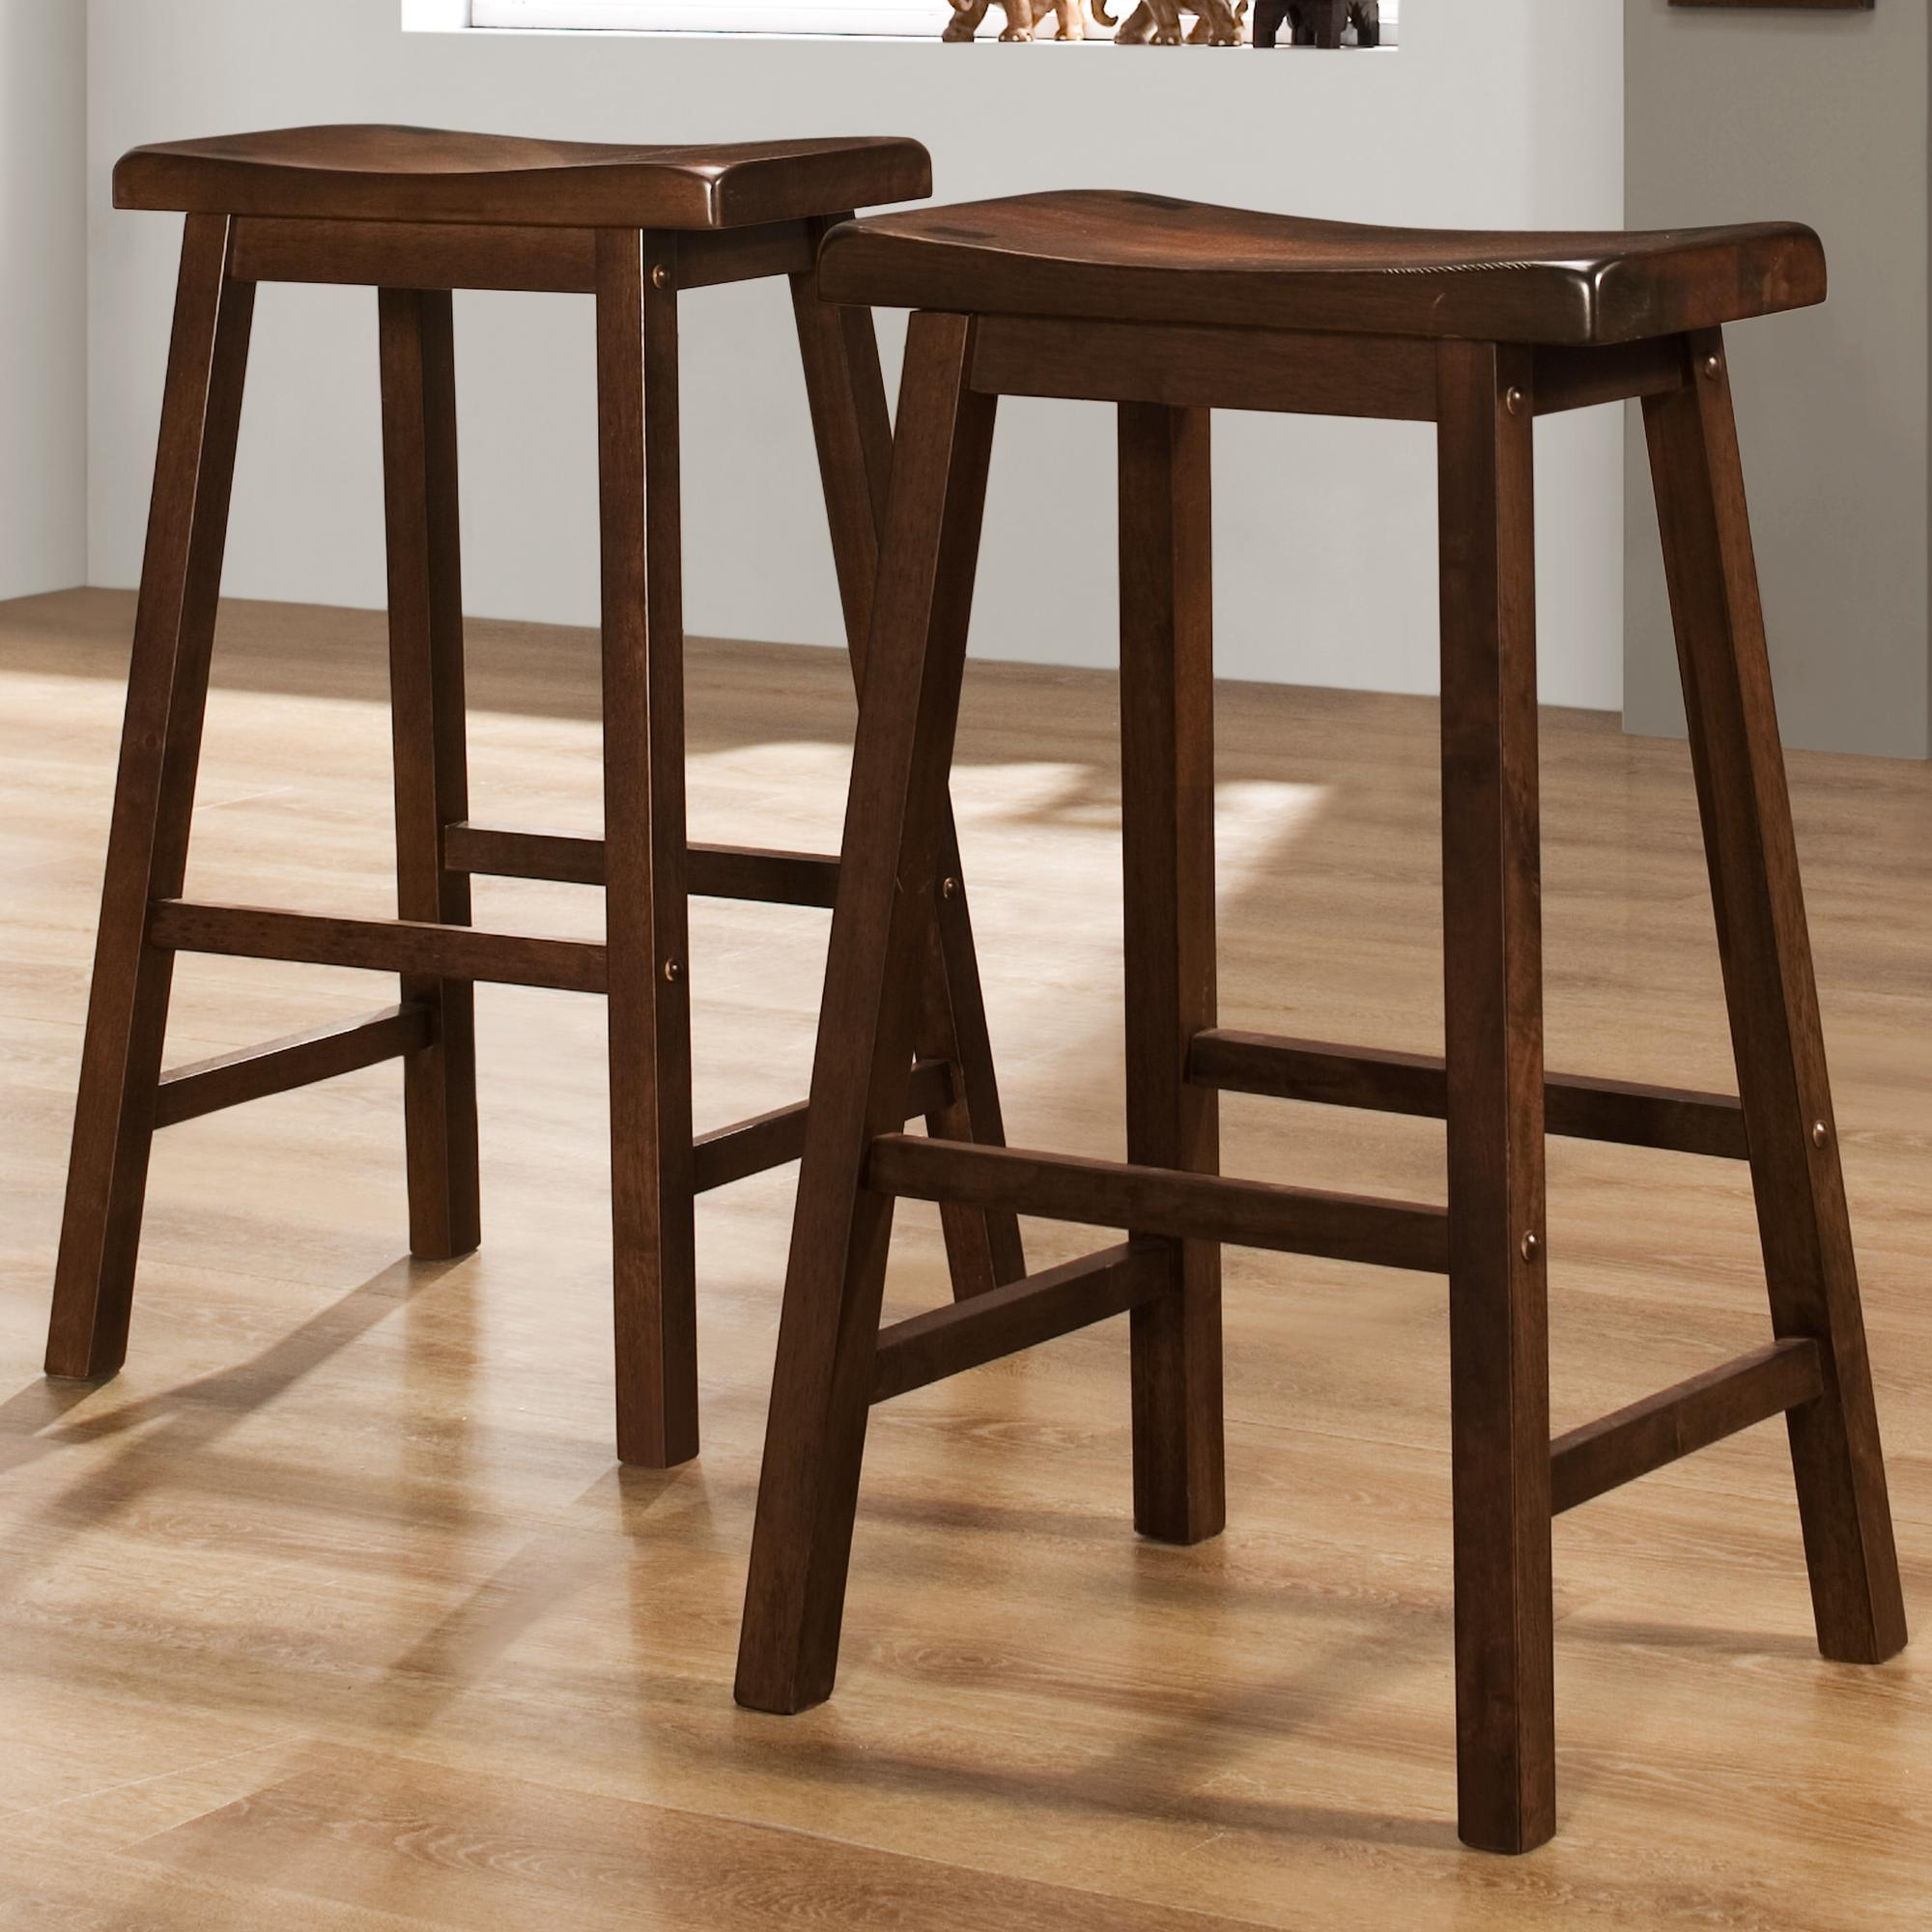 Homelegance 5302 29 Inch Stool With Curved Saddle Seat Value City Furniture Bar Stools